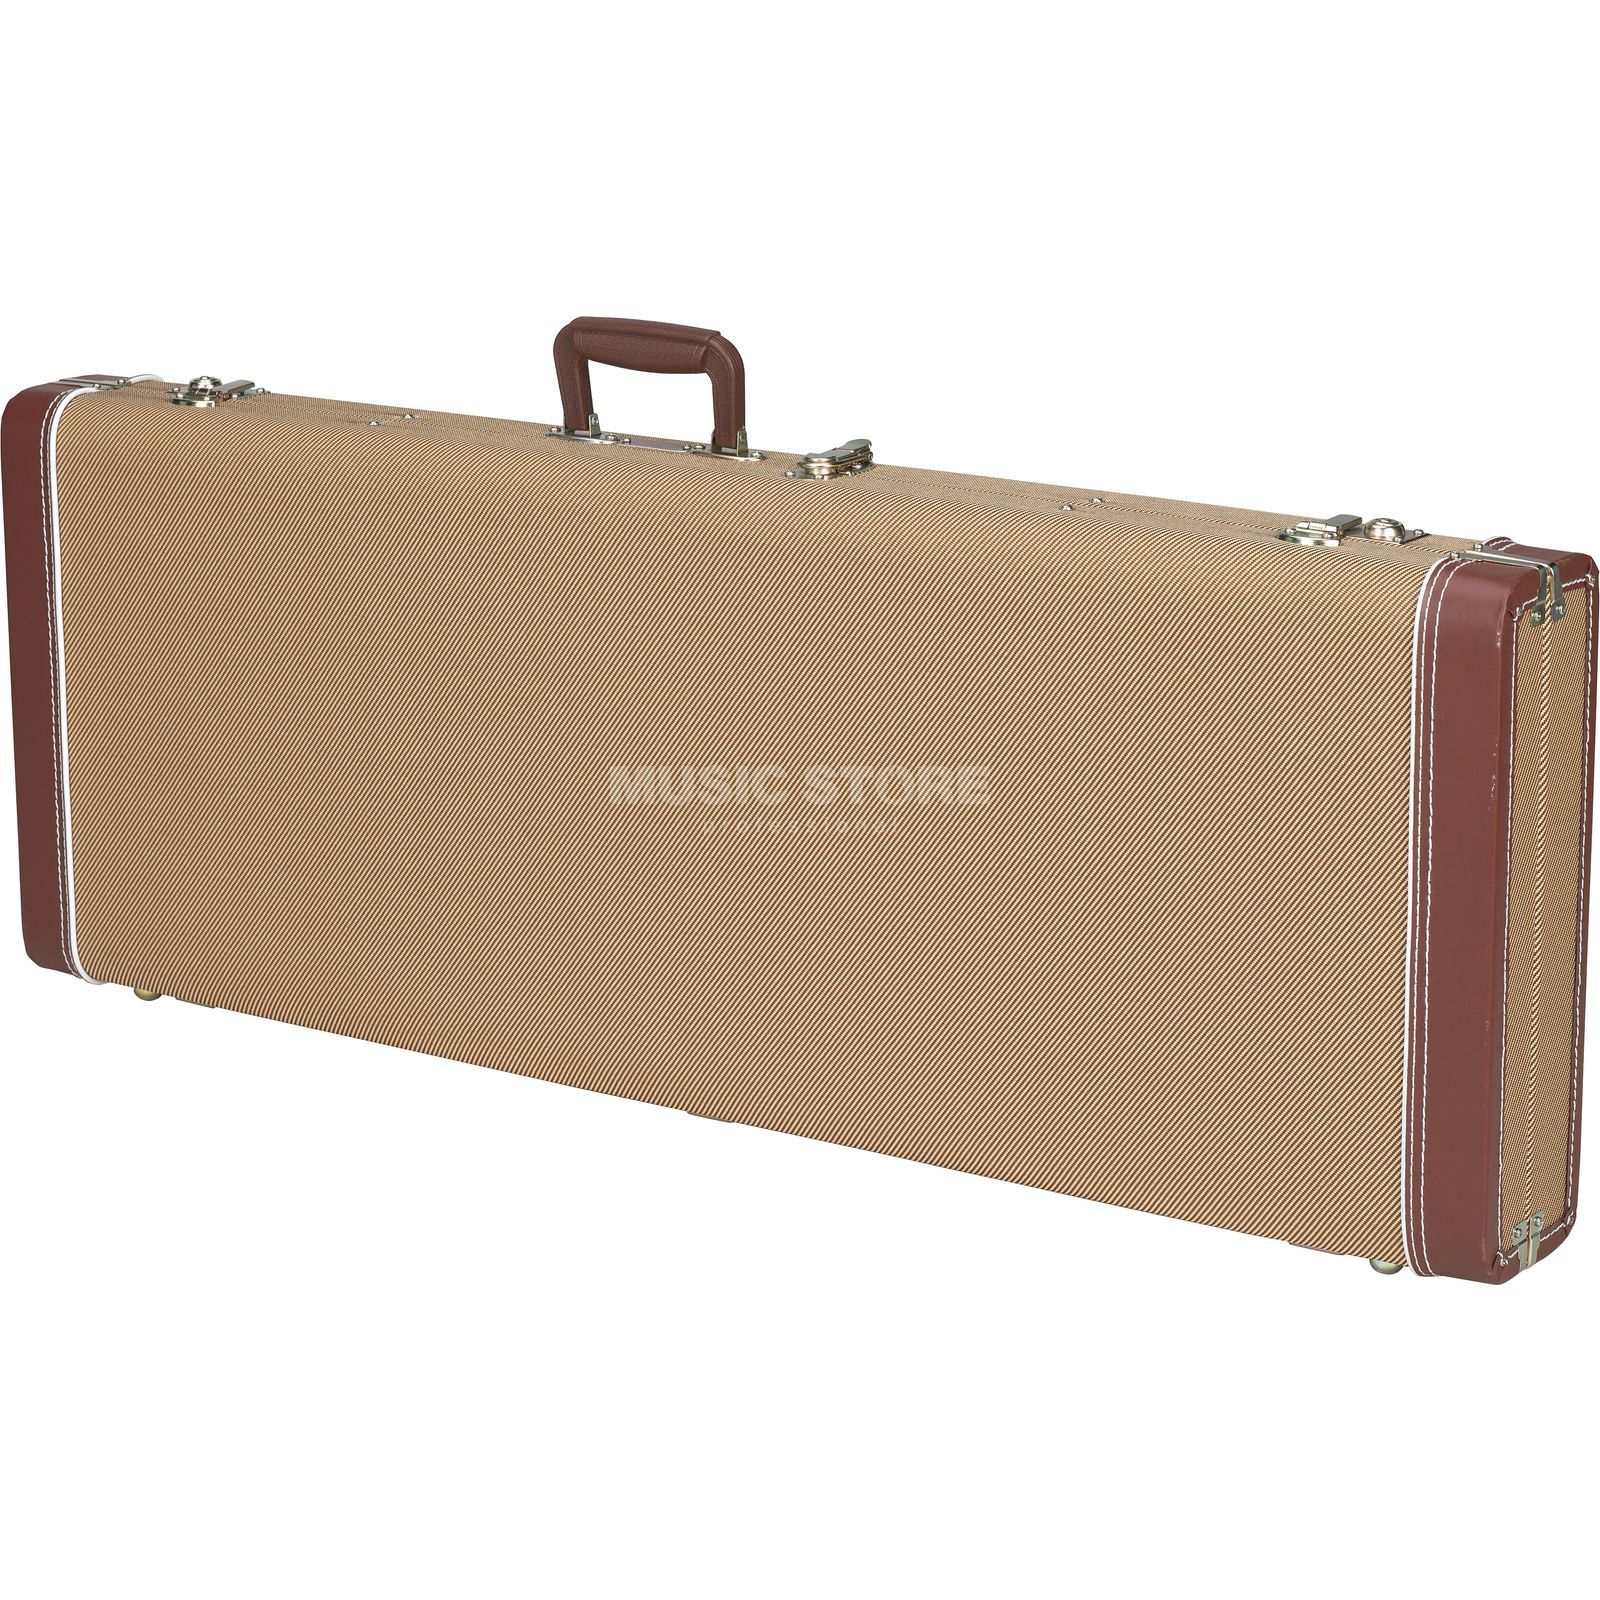 Fender Case Pro Series P+J-Bass Tweed Woodcase Tweed Imagem do produto